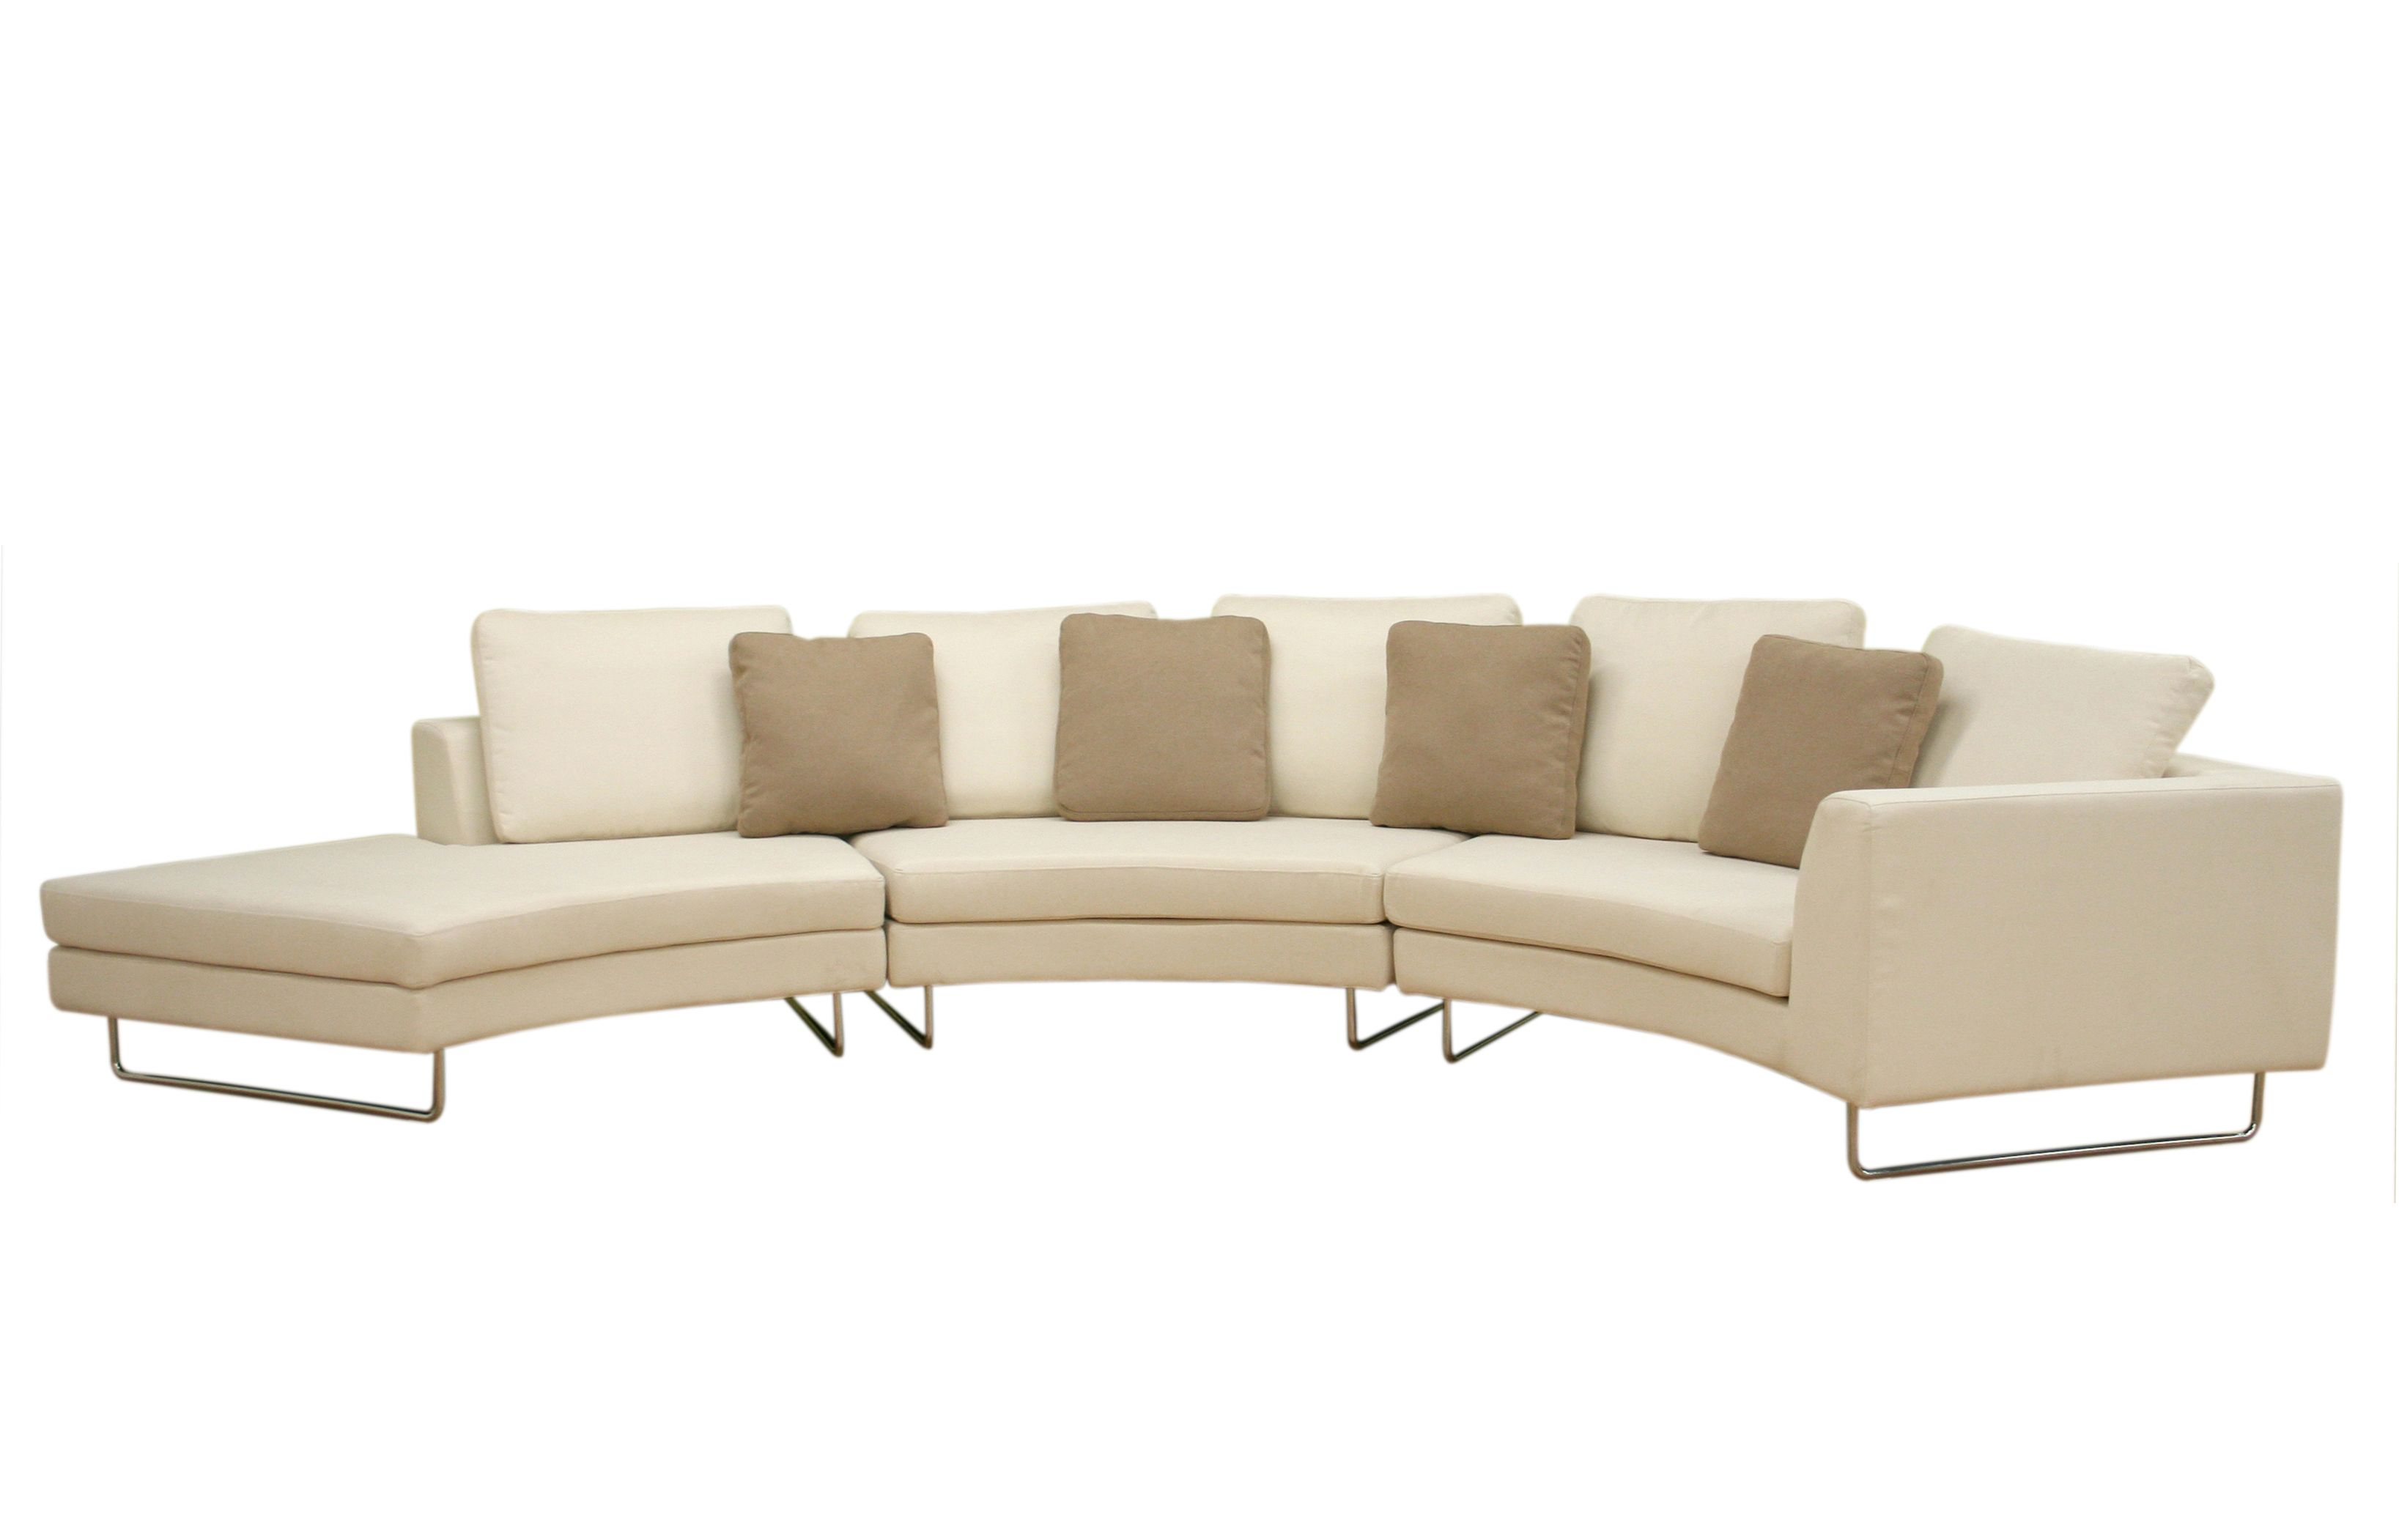 modern round sofa bed hideabed with air mattress curved sectional beds design wonderful